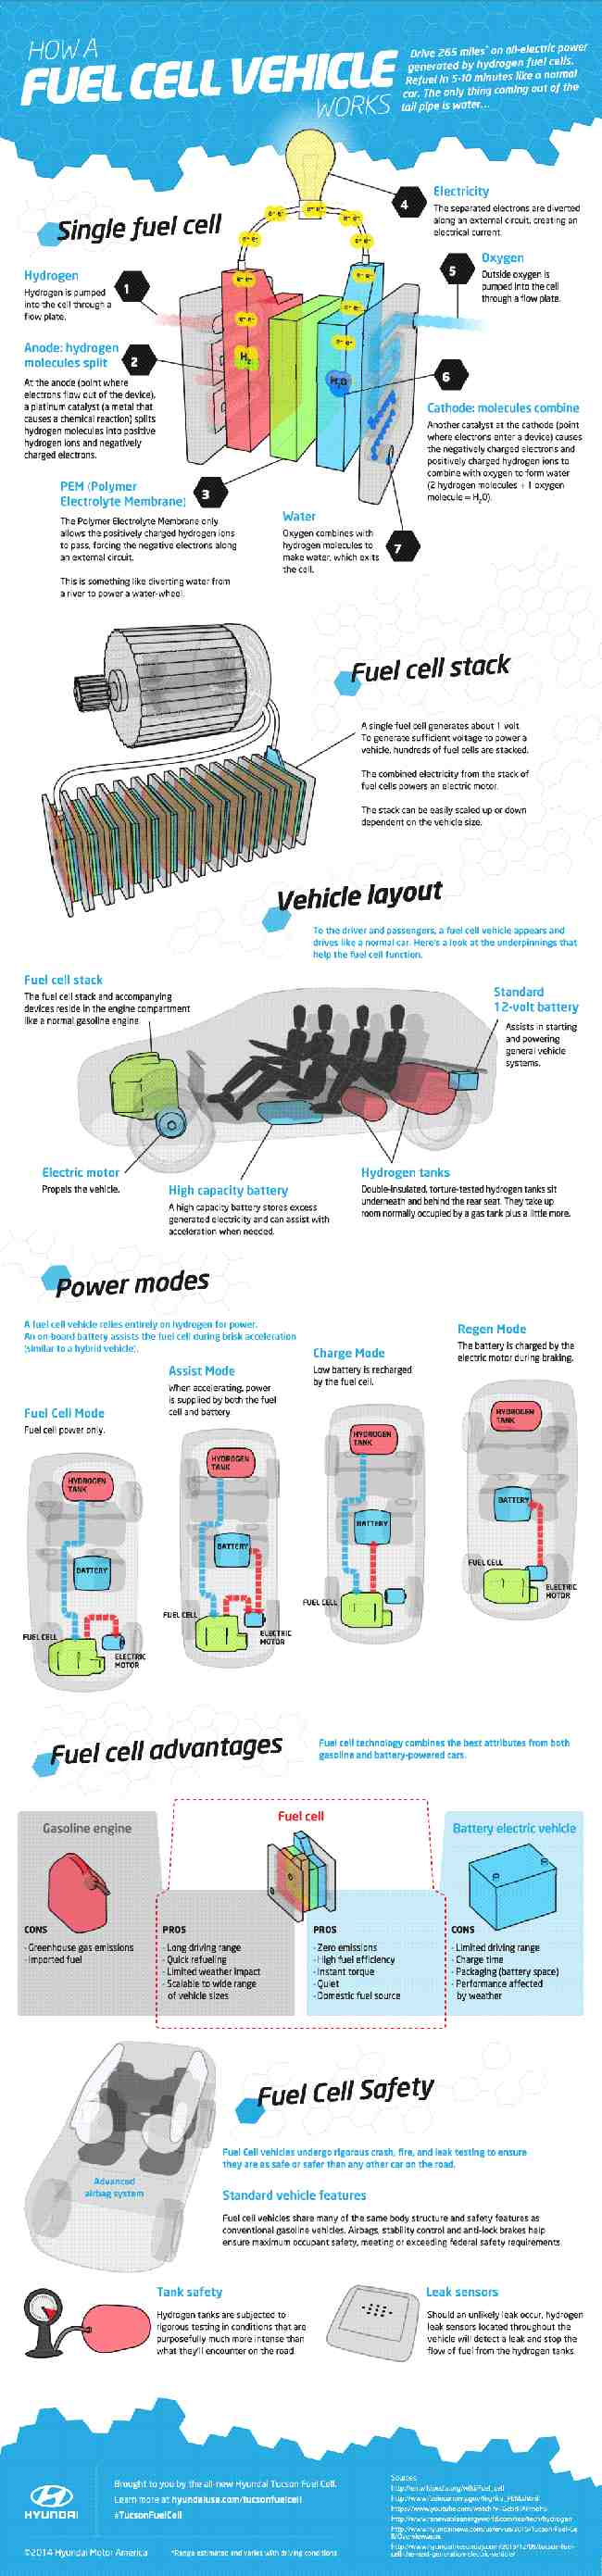 How a Fuel Cell Vehicle Works